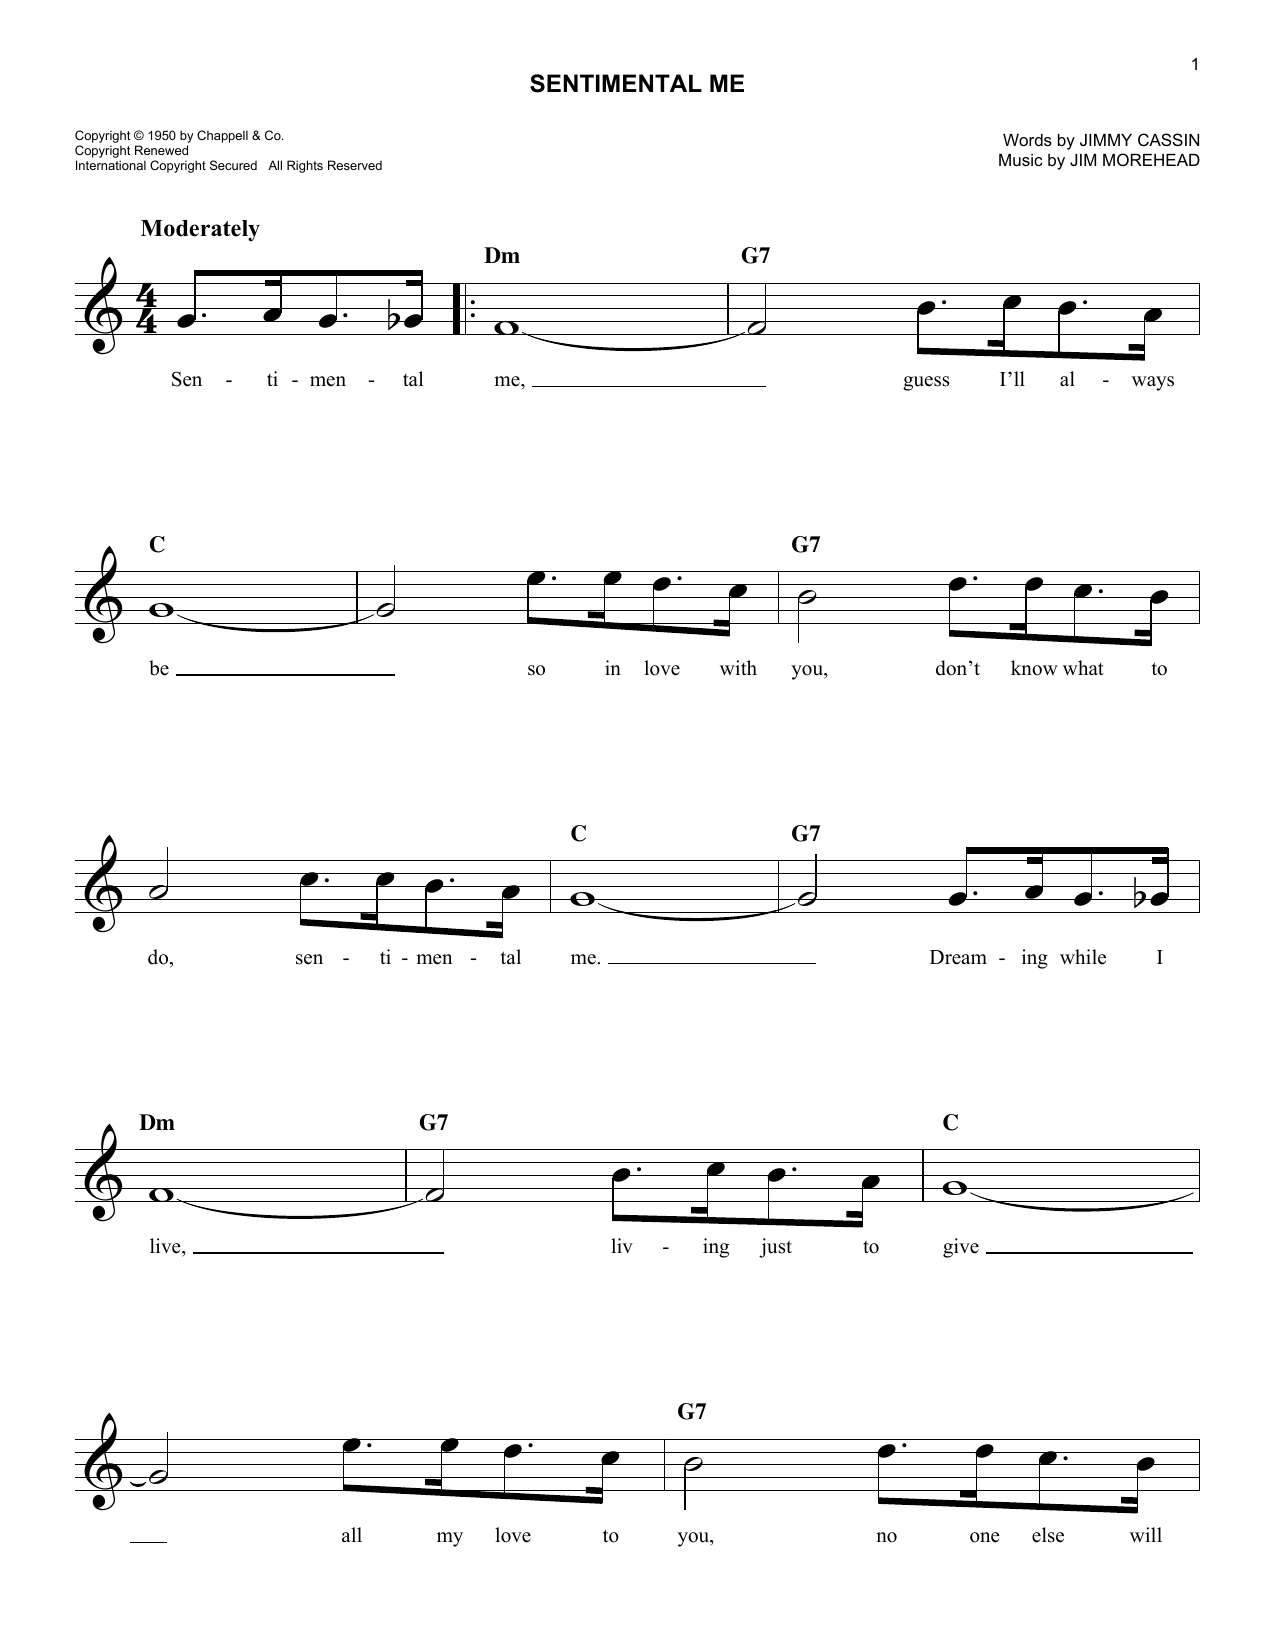 Jimmy Cassin Sentimental Me sheet music notes and chords. Download Printable PDF.